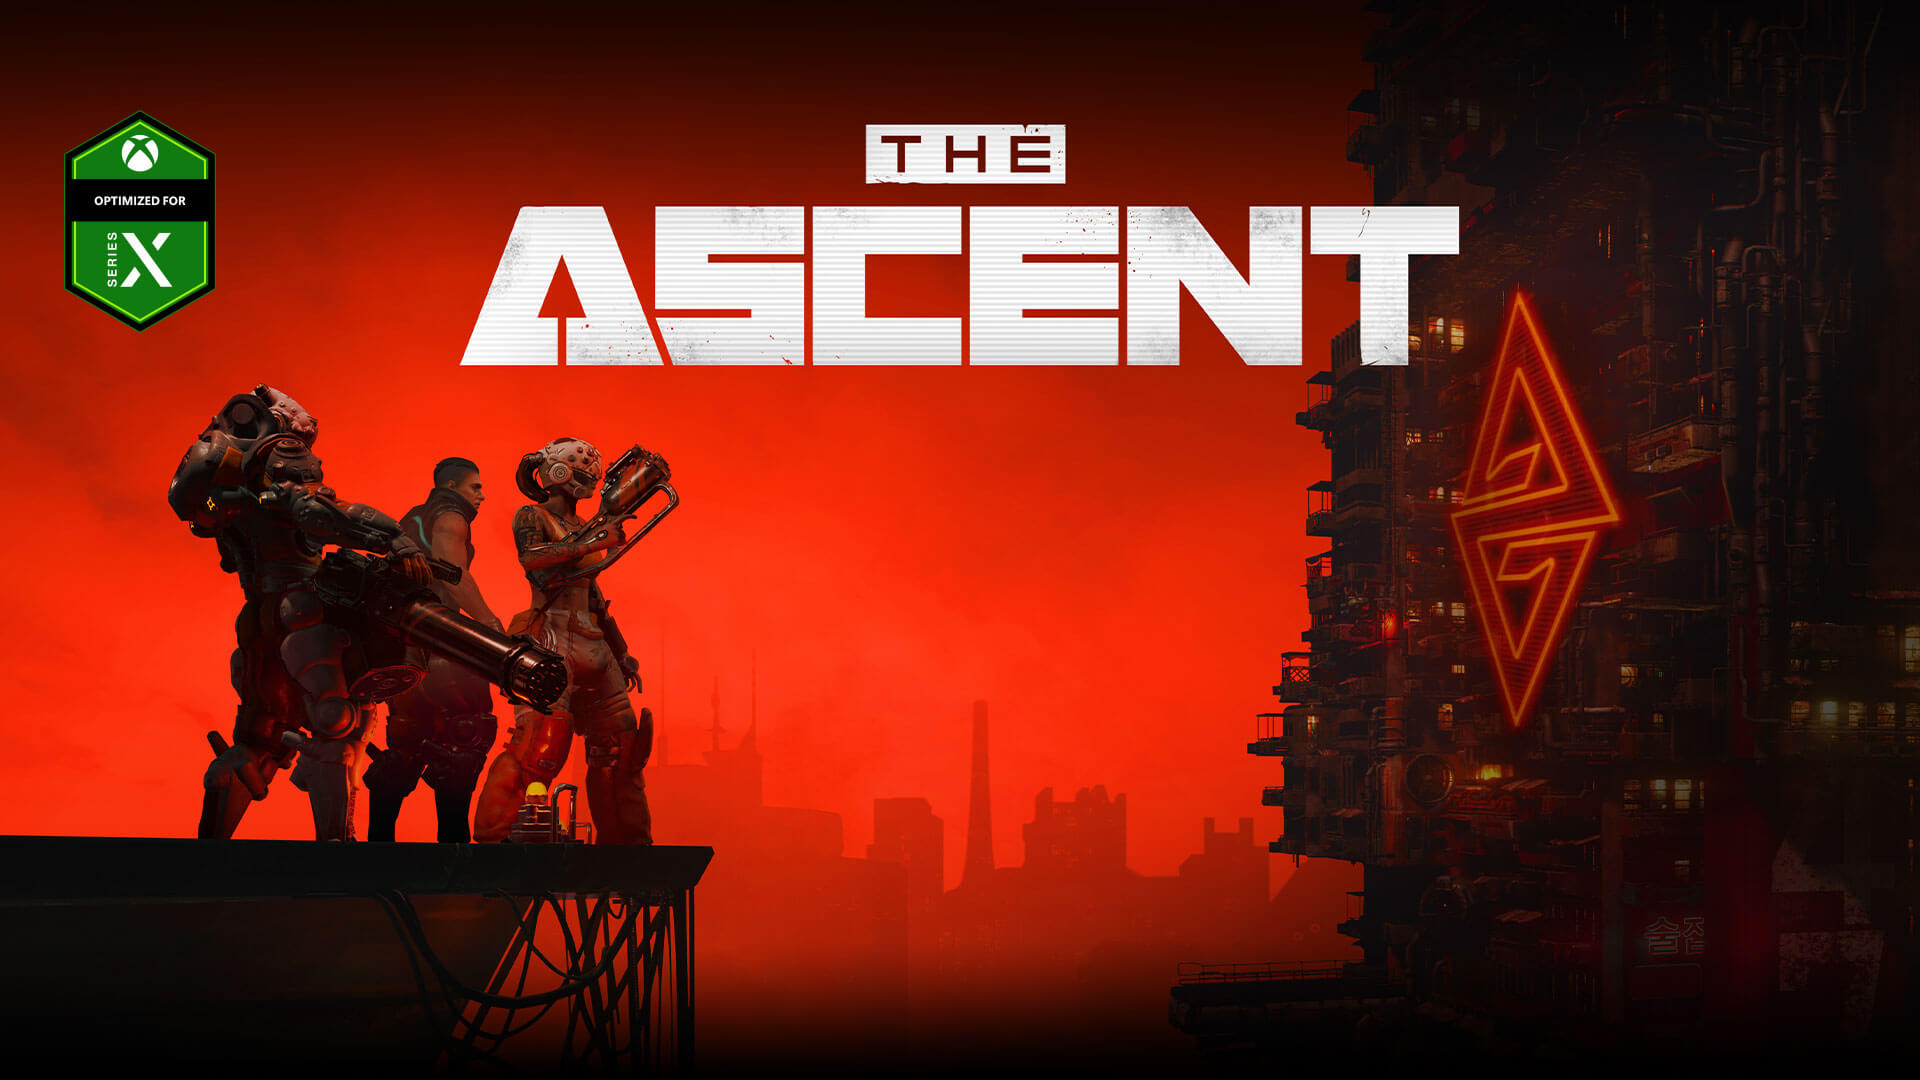 The Ascent Launches on PC and Xbox Consoles in 2021